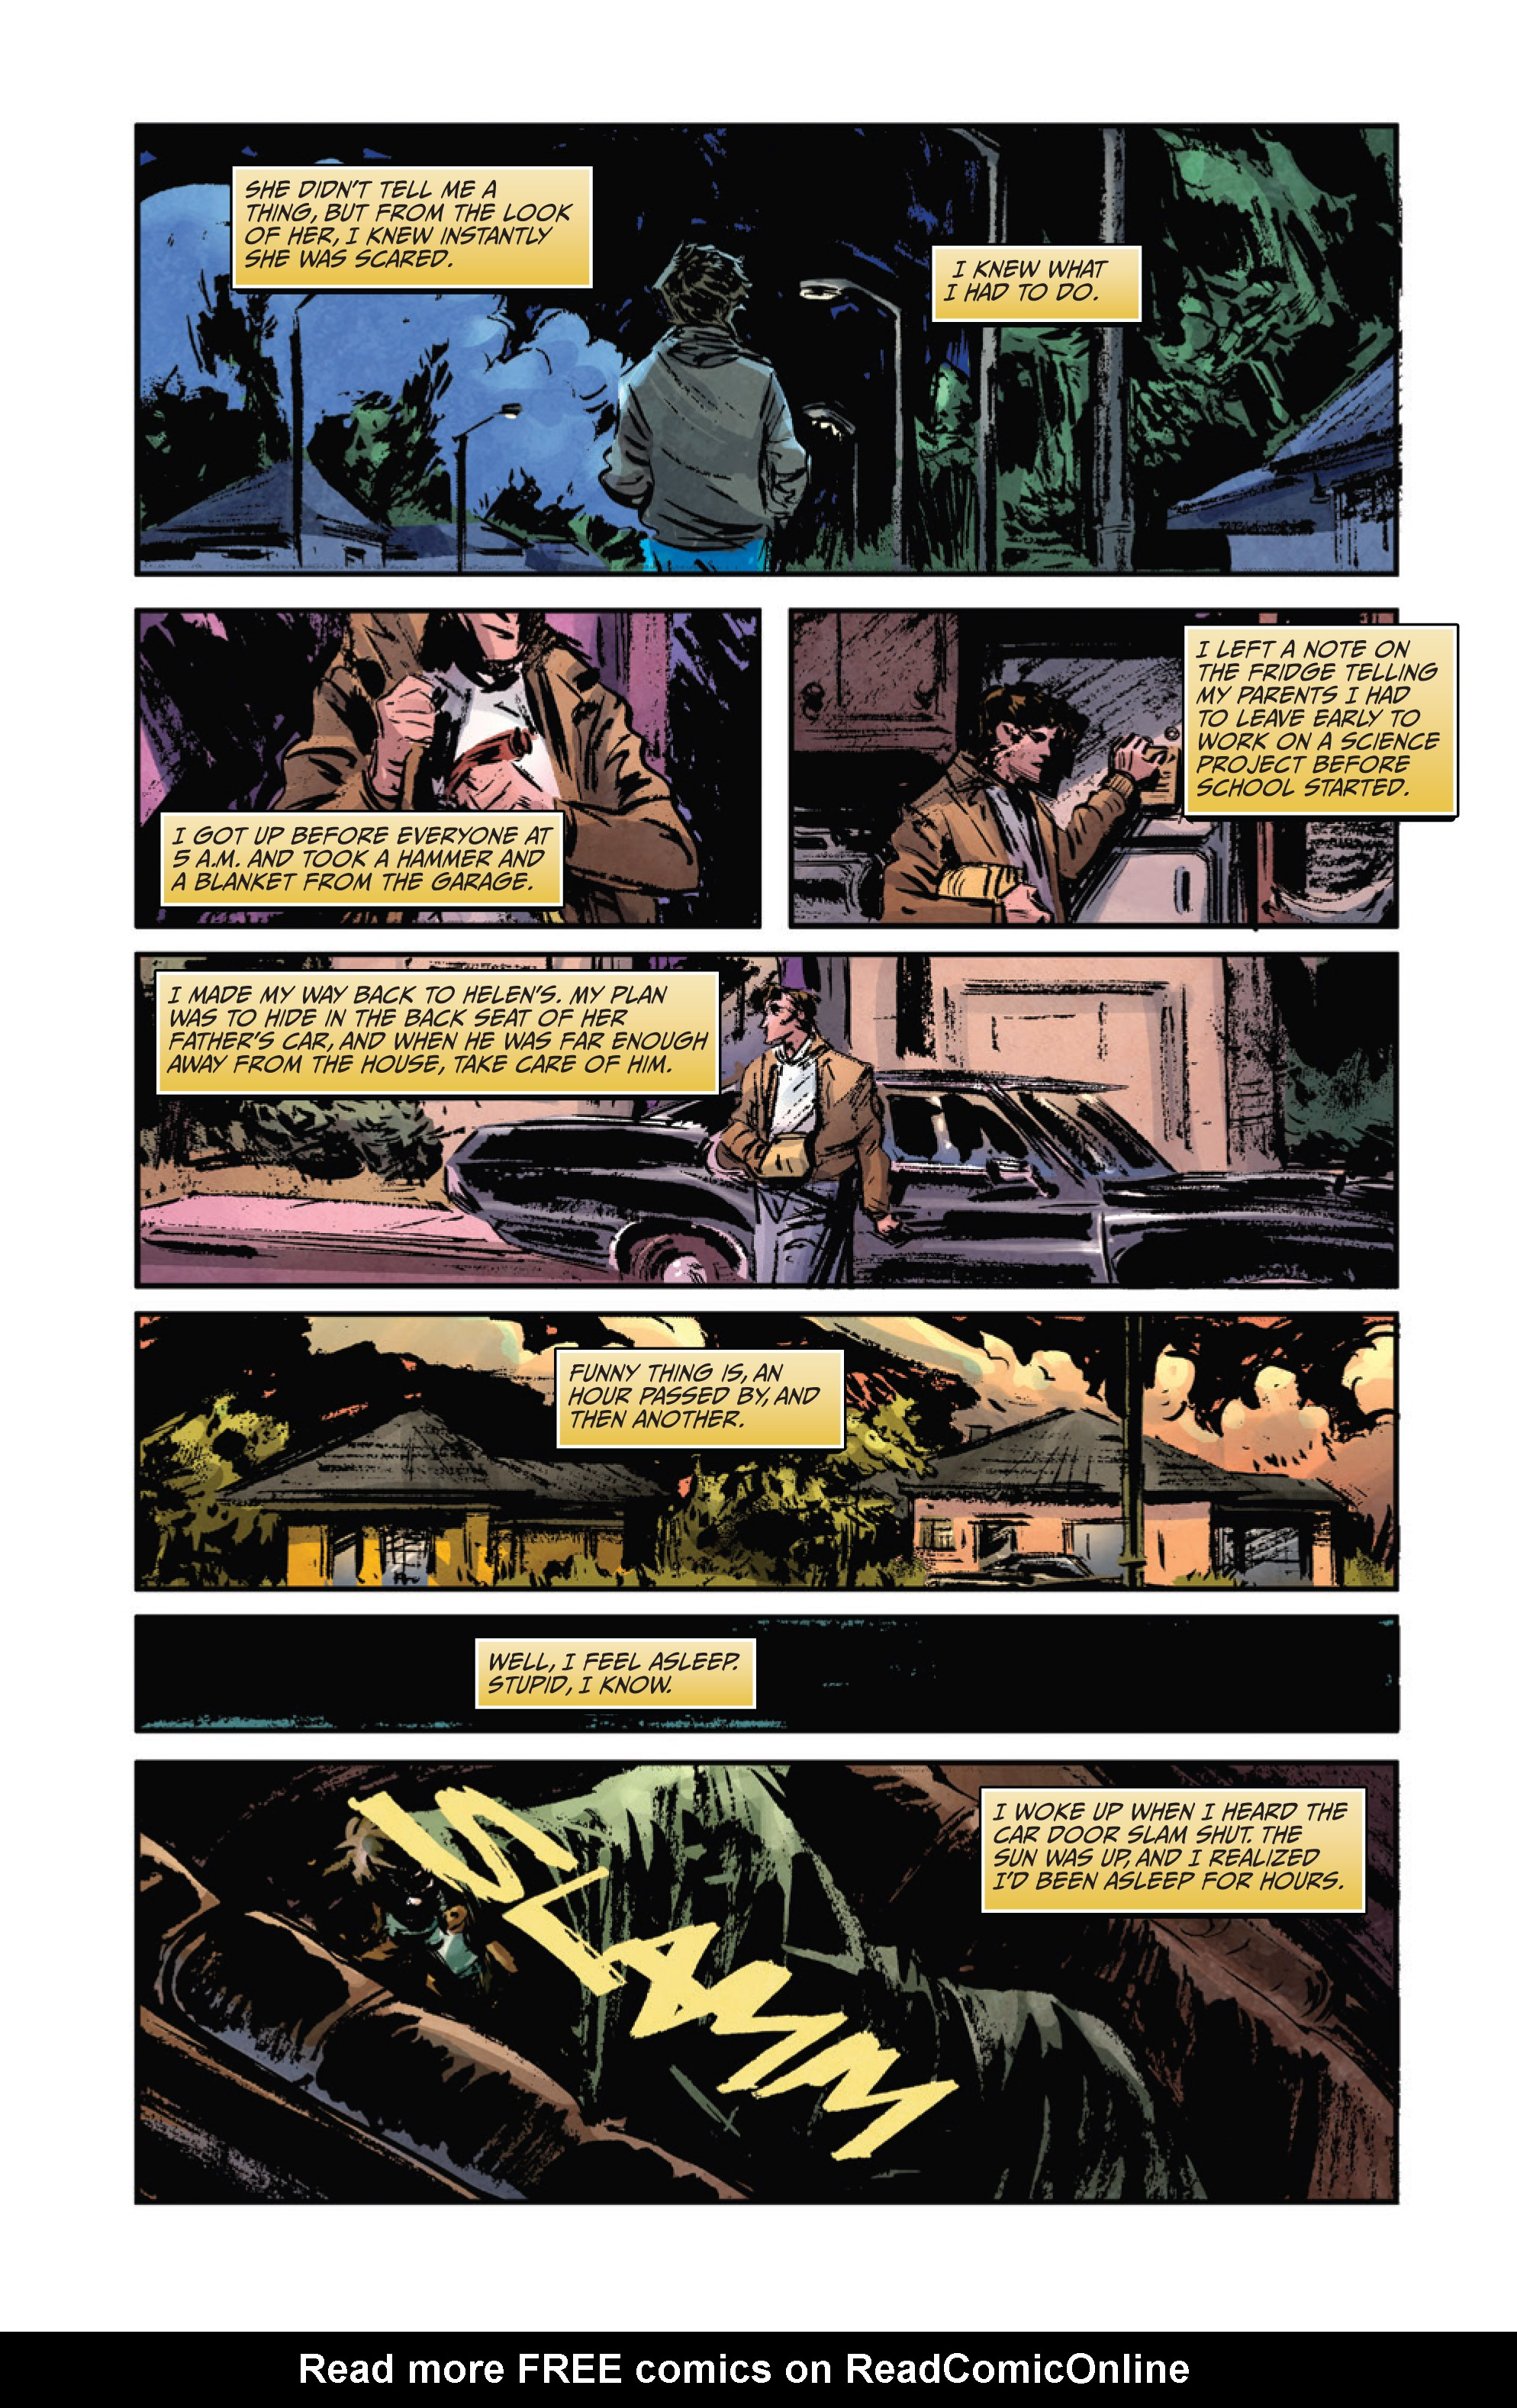 Read online Sex and Violence Vol. 2 comic -  Issue # Full - 54